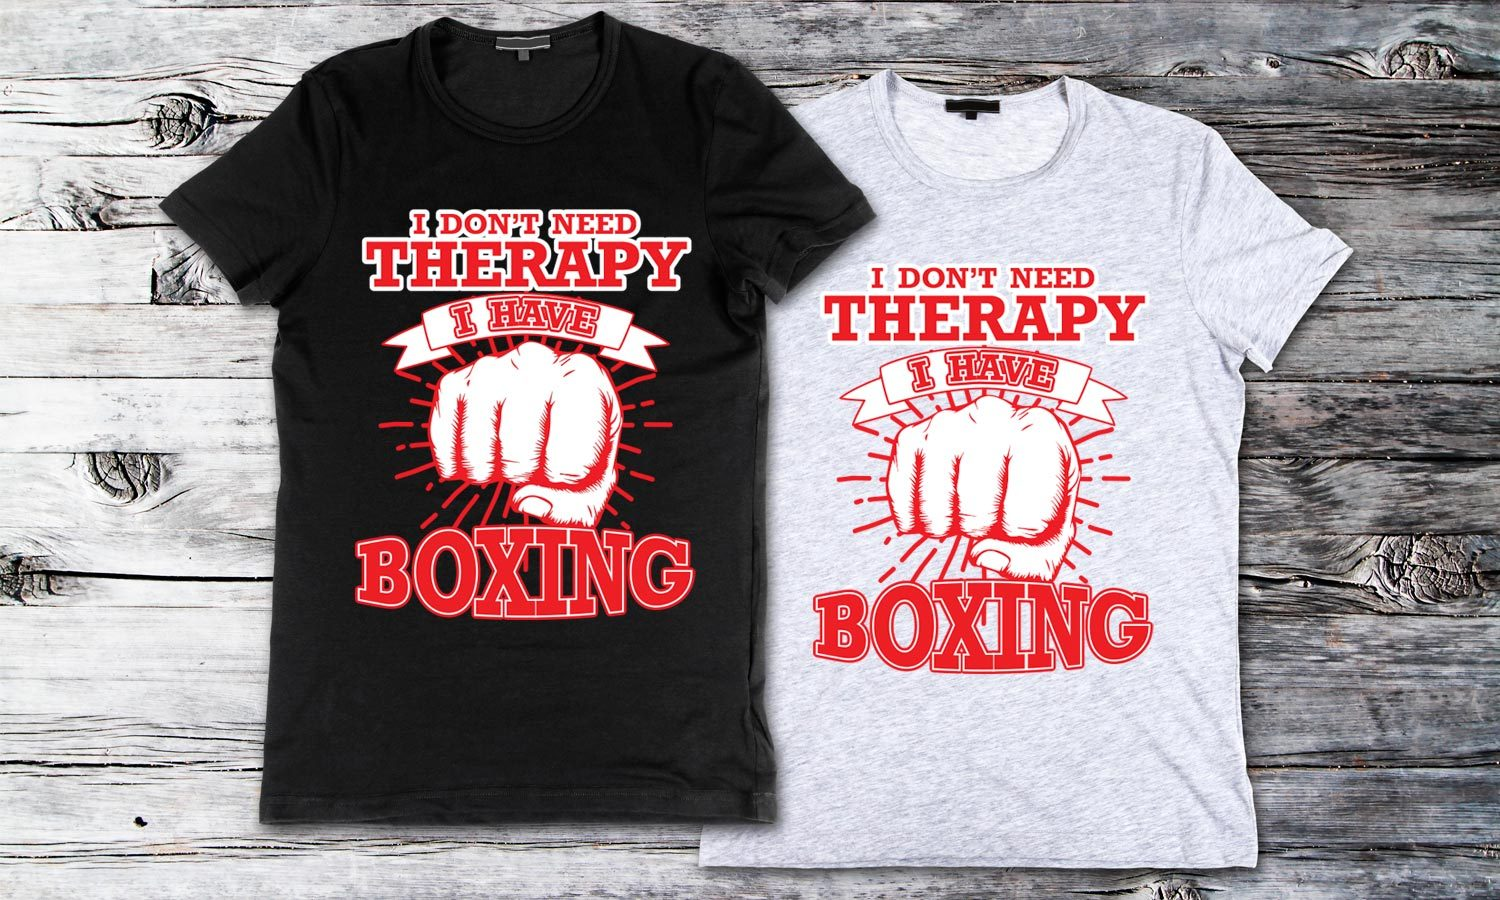 Boxing Therapy - Printed T-Shirt for Men, Women and Kids - TS245